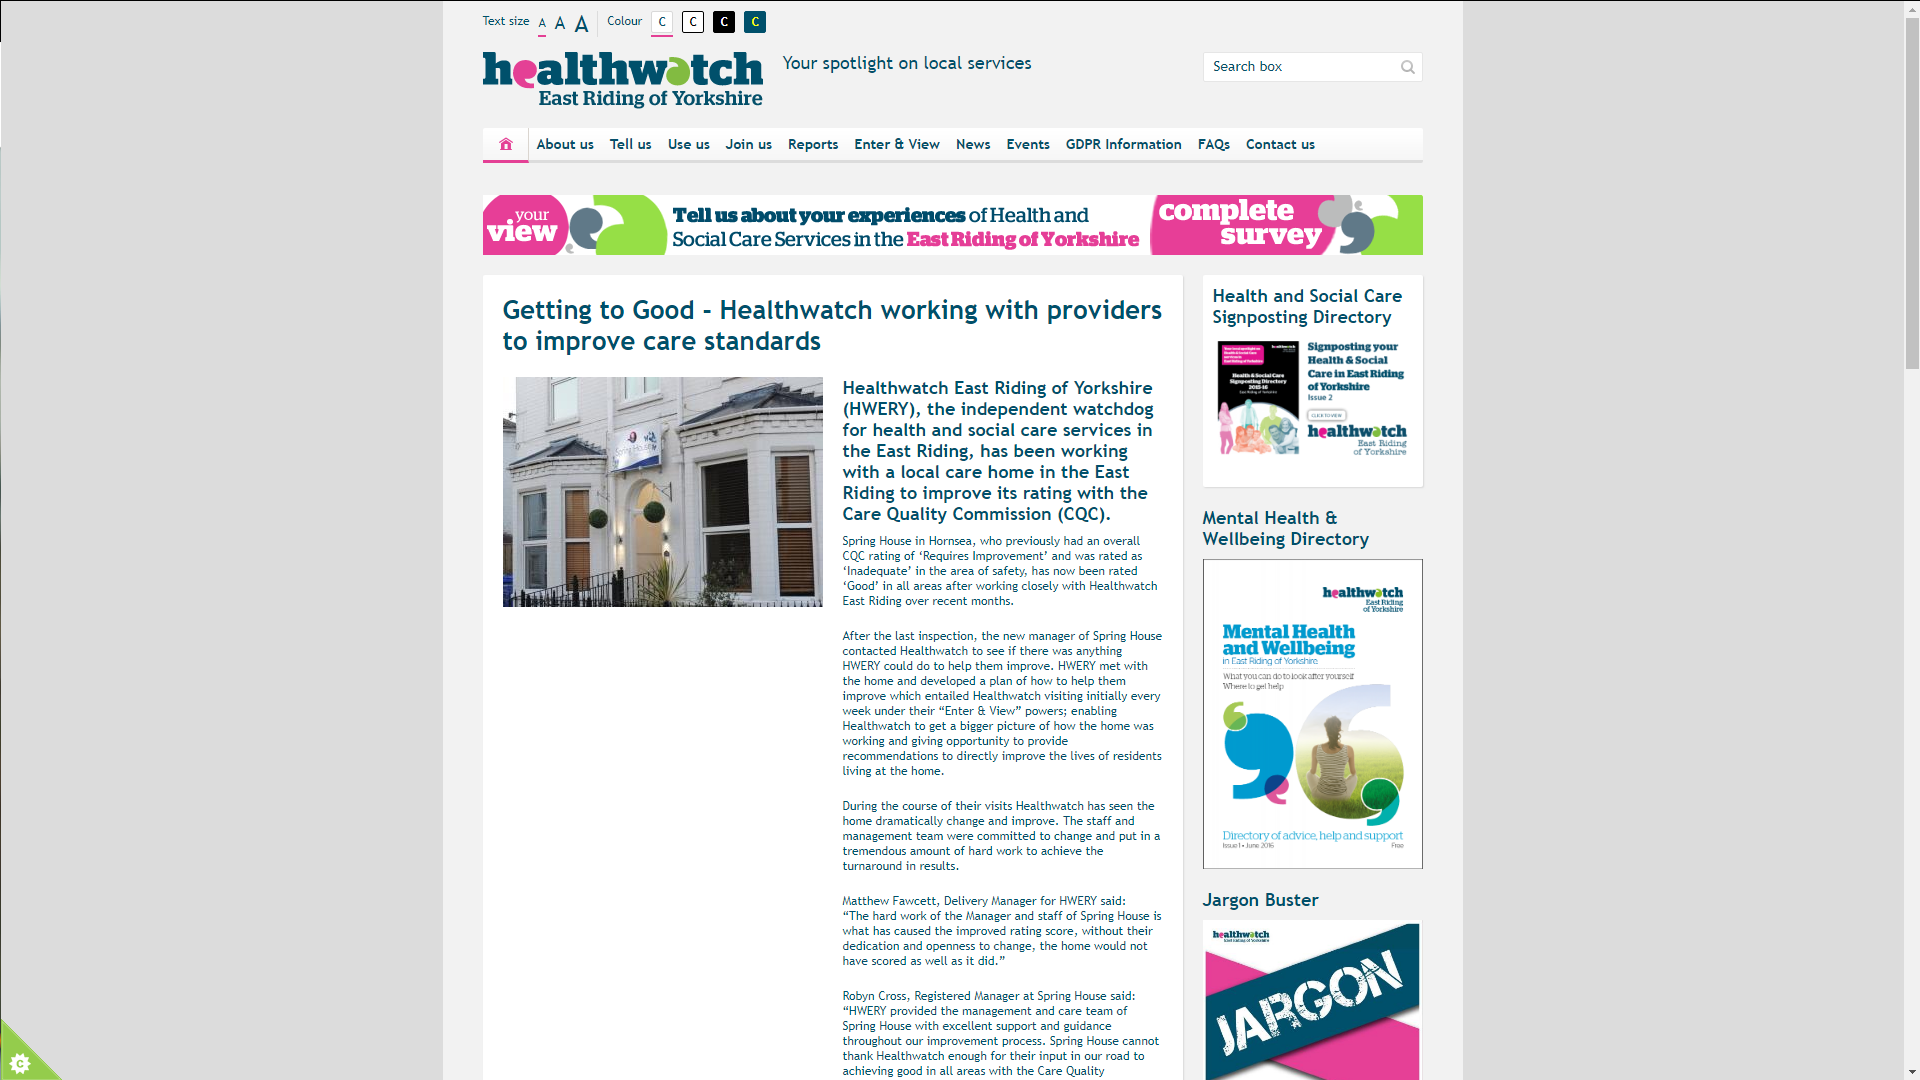 Healthwatch East Riding